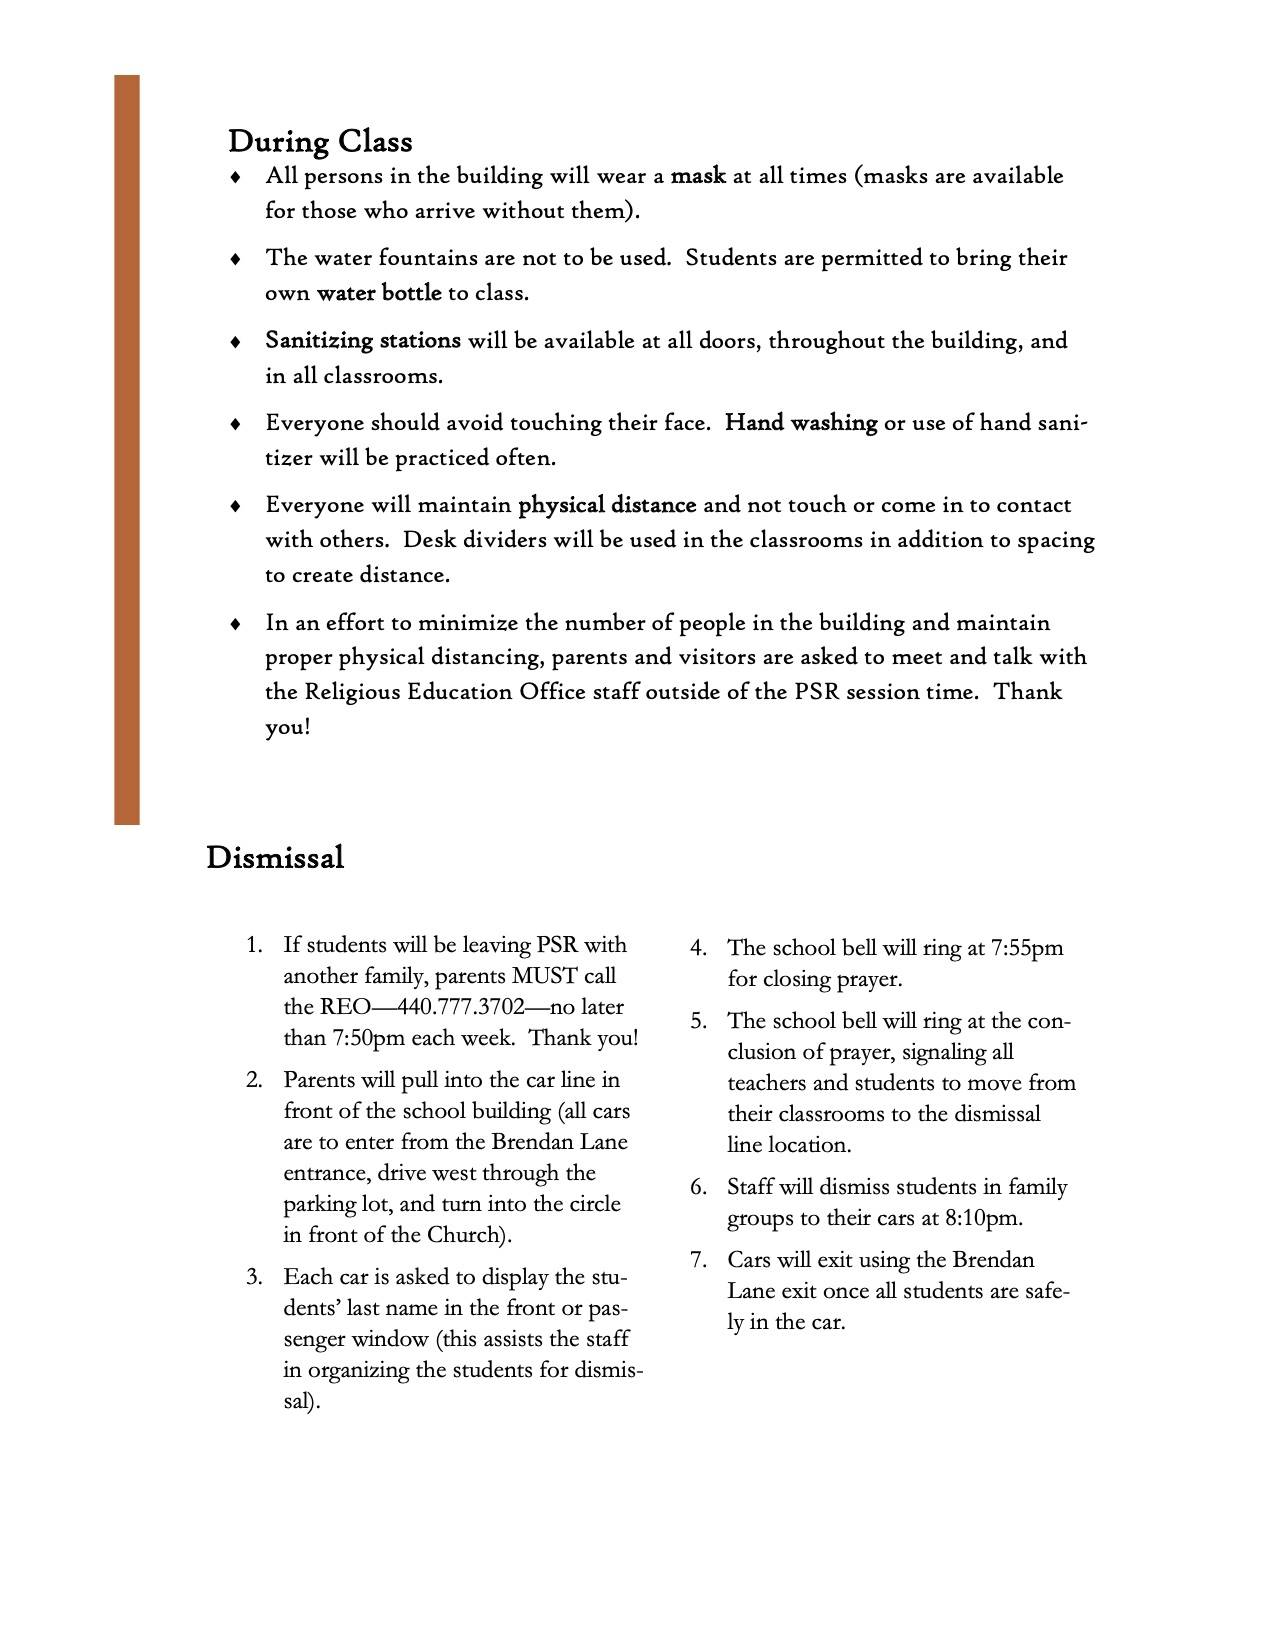 picture of procedures page 2